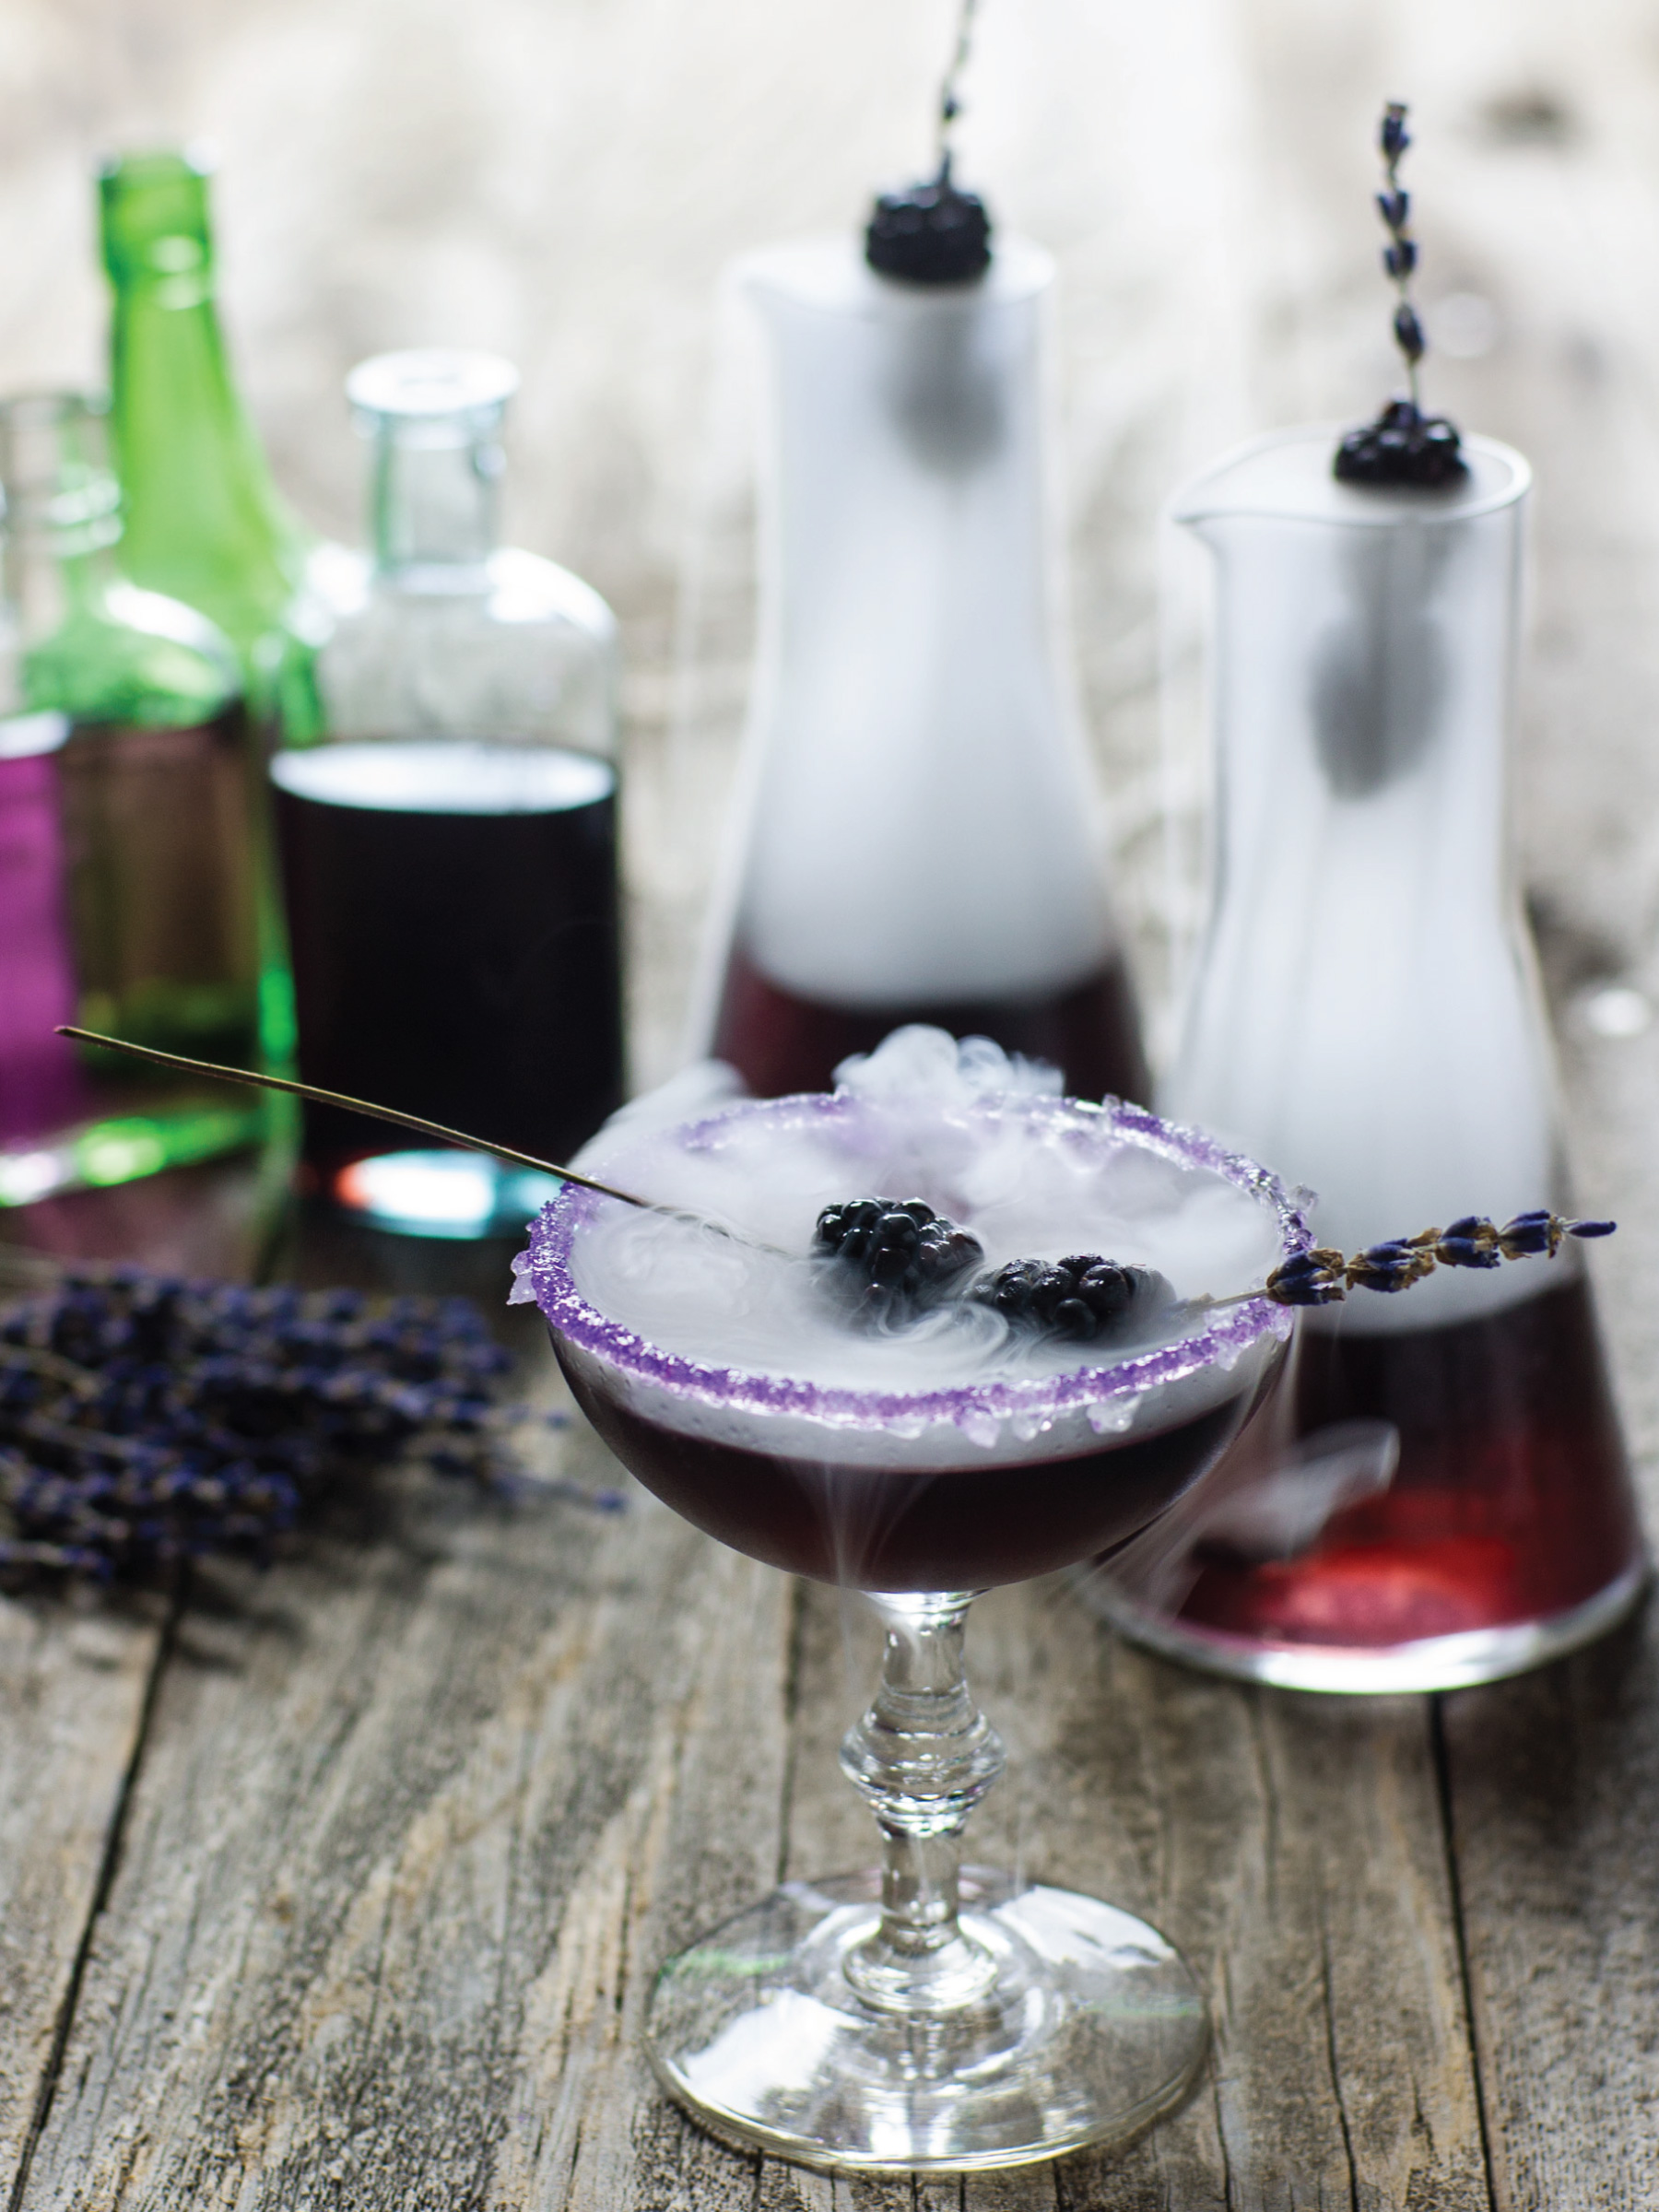 Mr Hyde Potion Cocktail by Sam Henderson of Today's Nest for HGTV